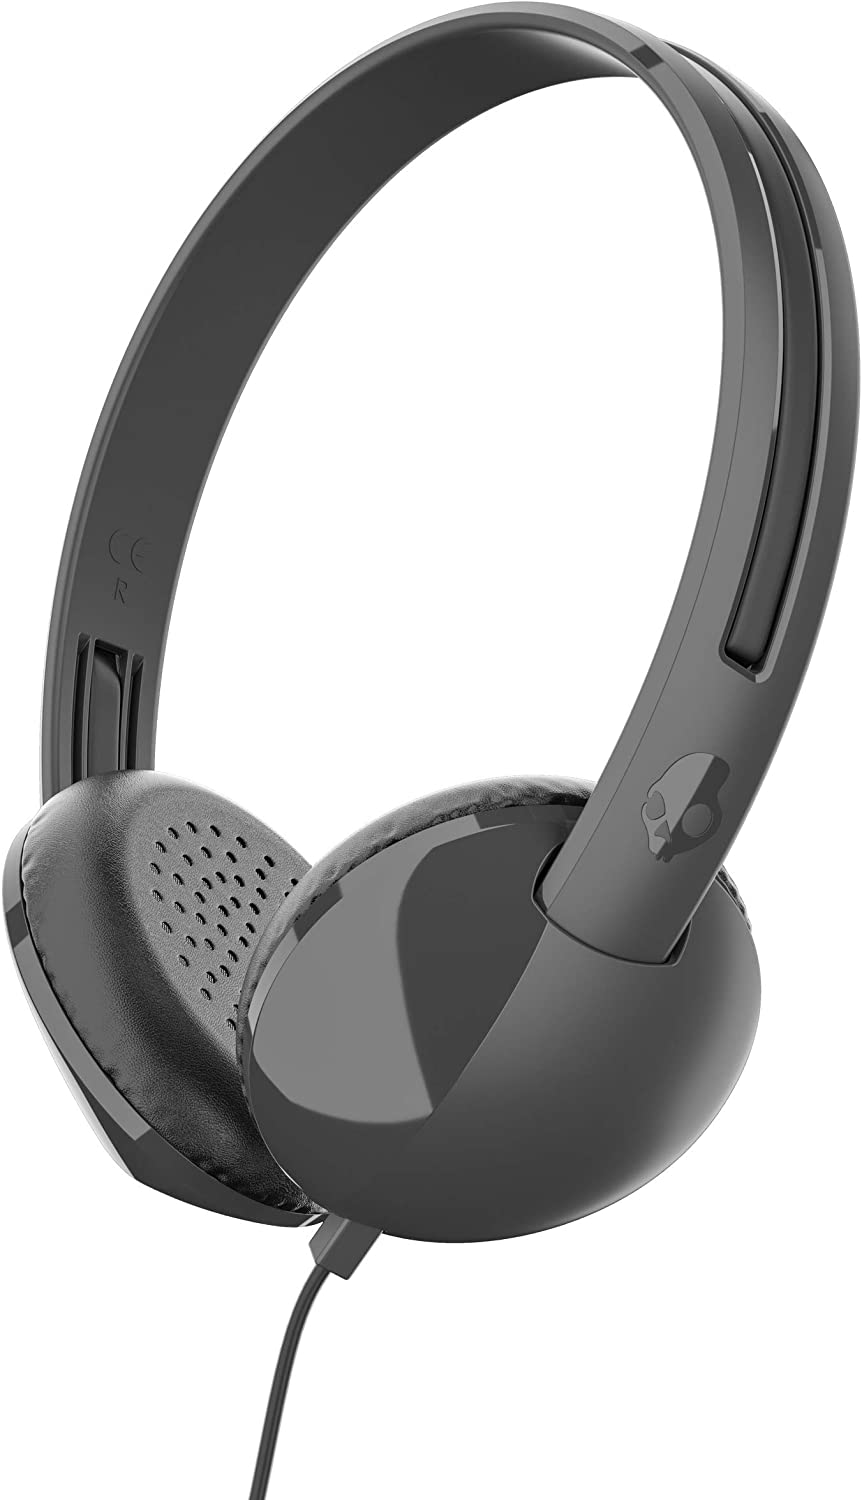 Skullcandy Stim On-Ear Headphones with Built-In Microphone and Remote, Supreme Sound Balanced Audio, Lightweight Design for Comfortable Fit, Black